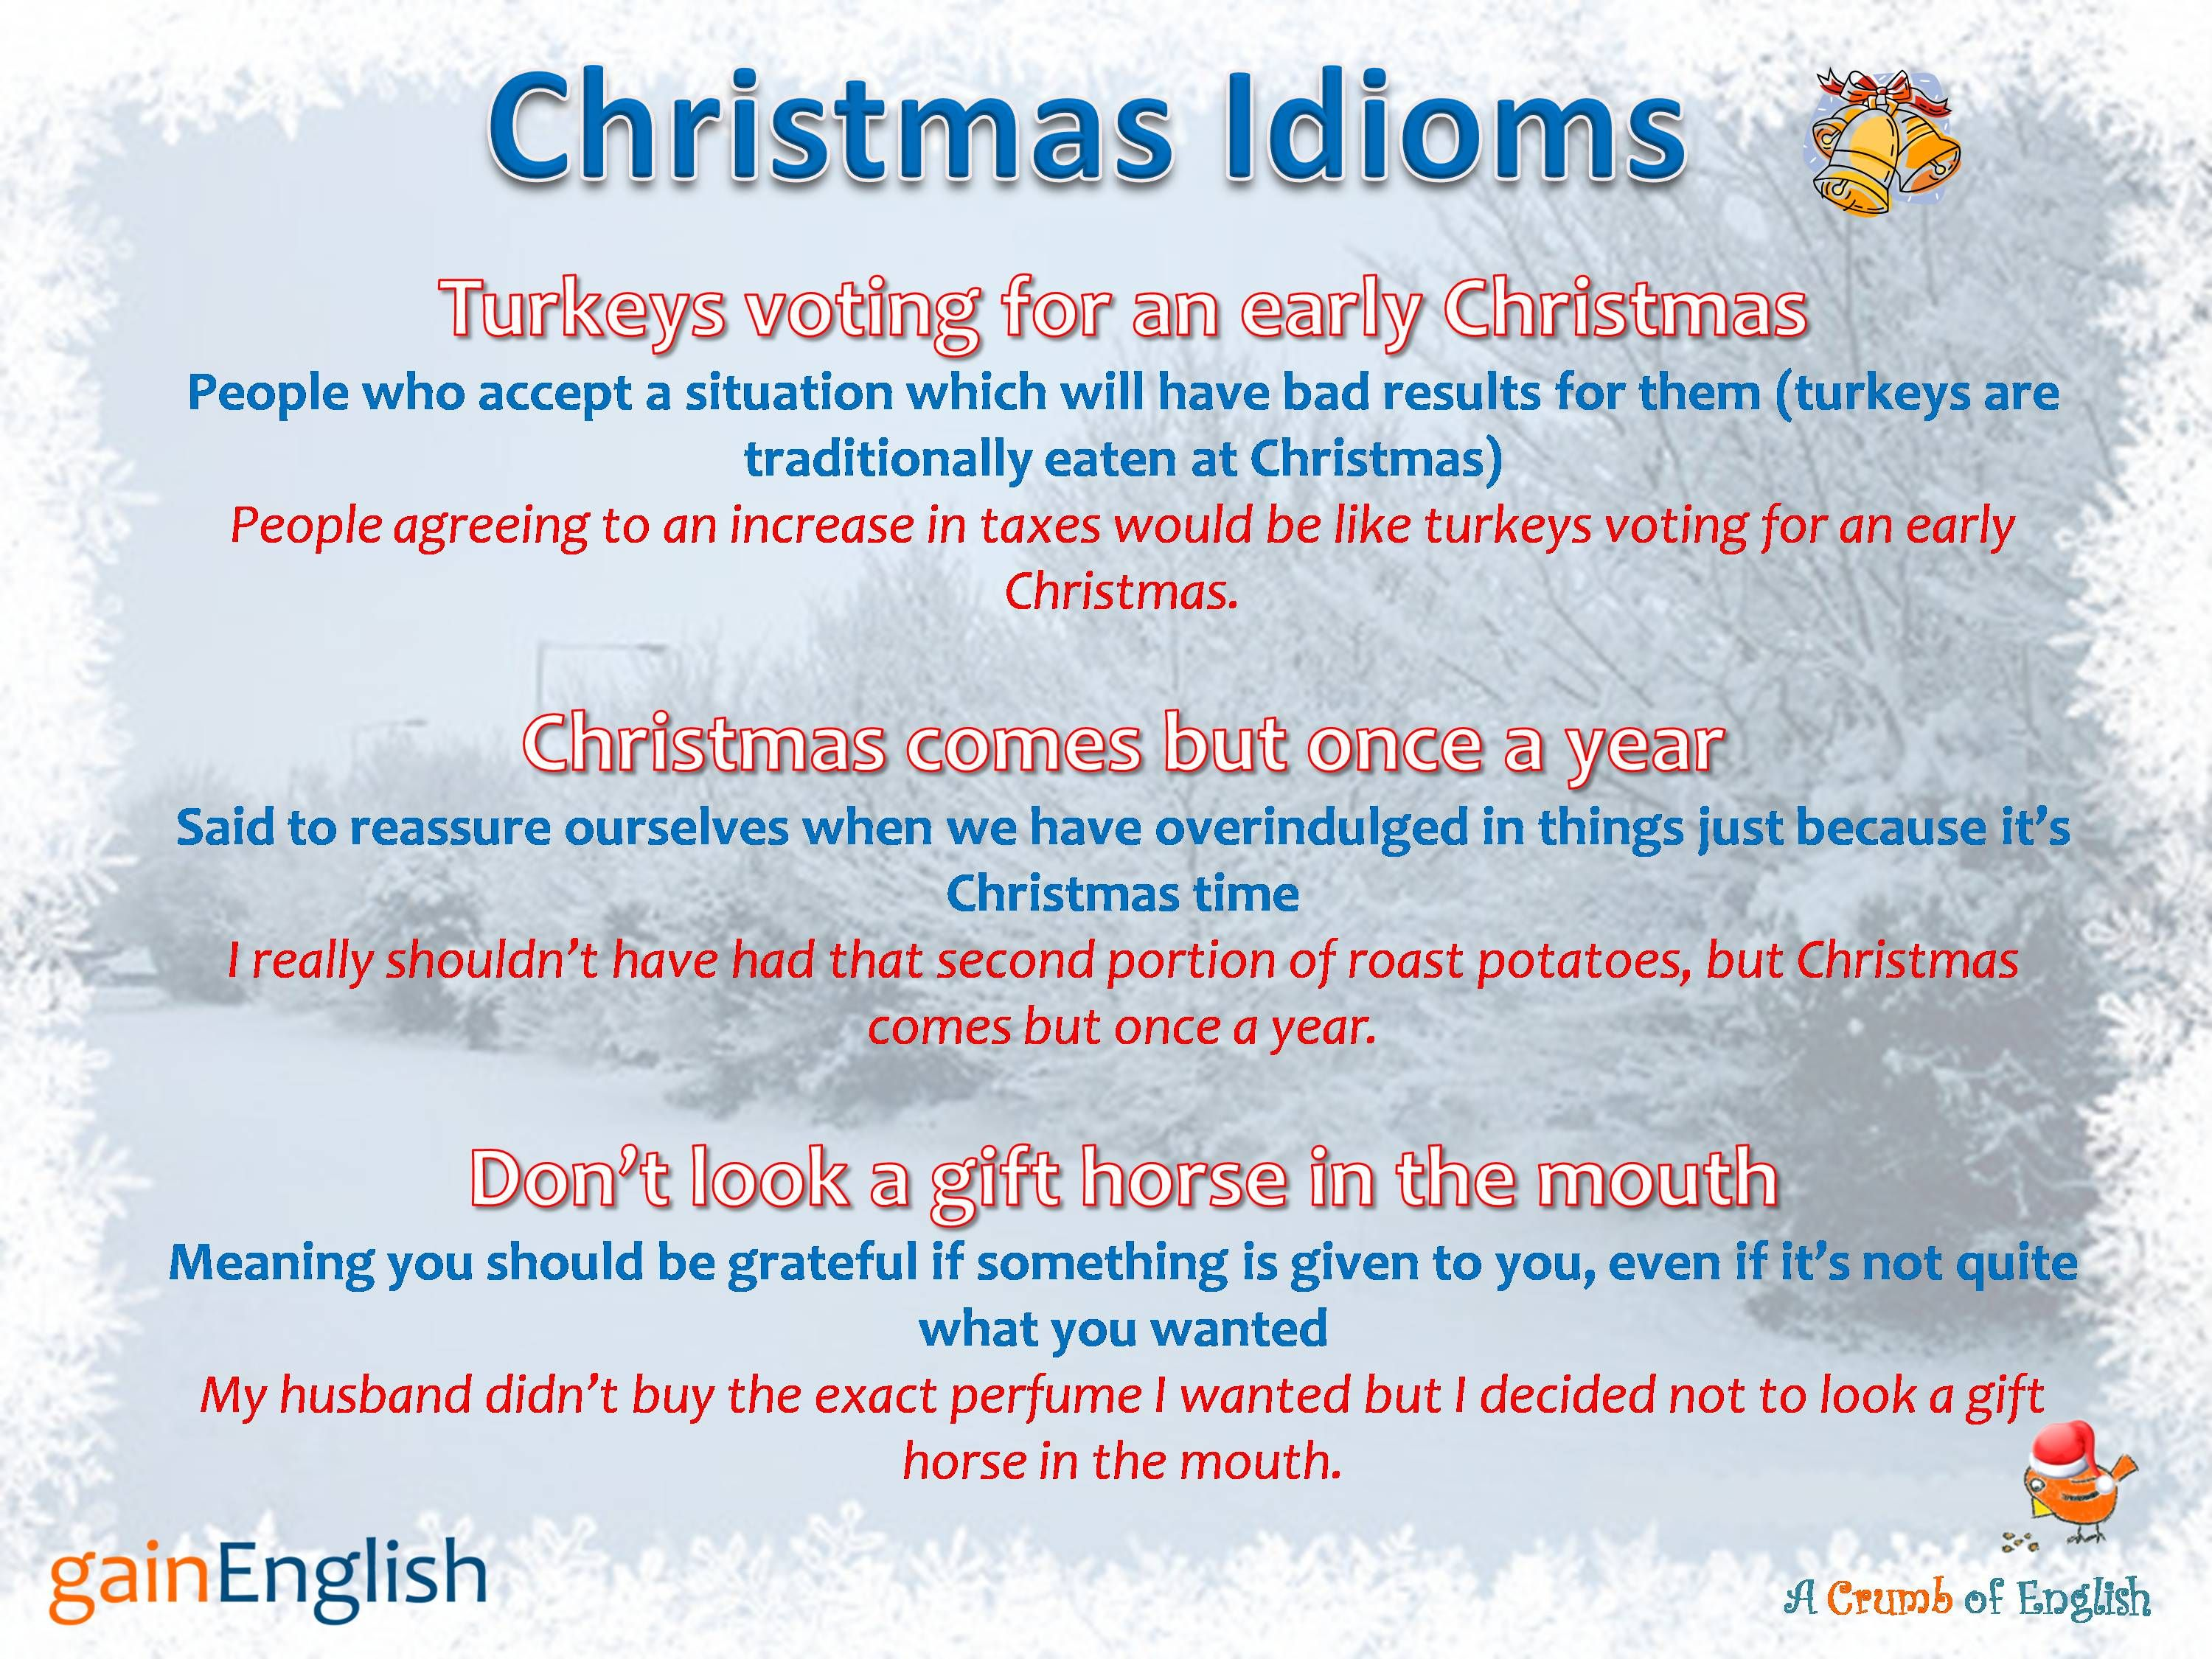 Image Result For Christmas Idioms With Images To Share